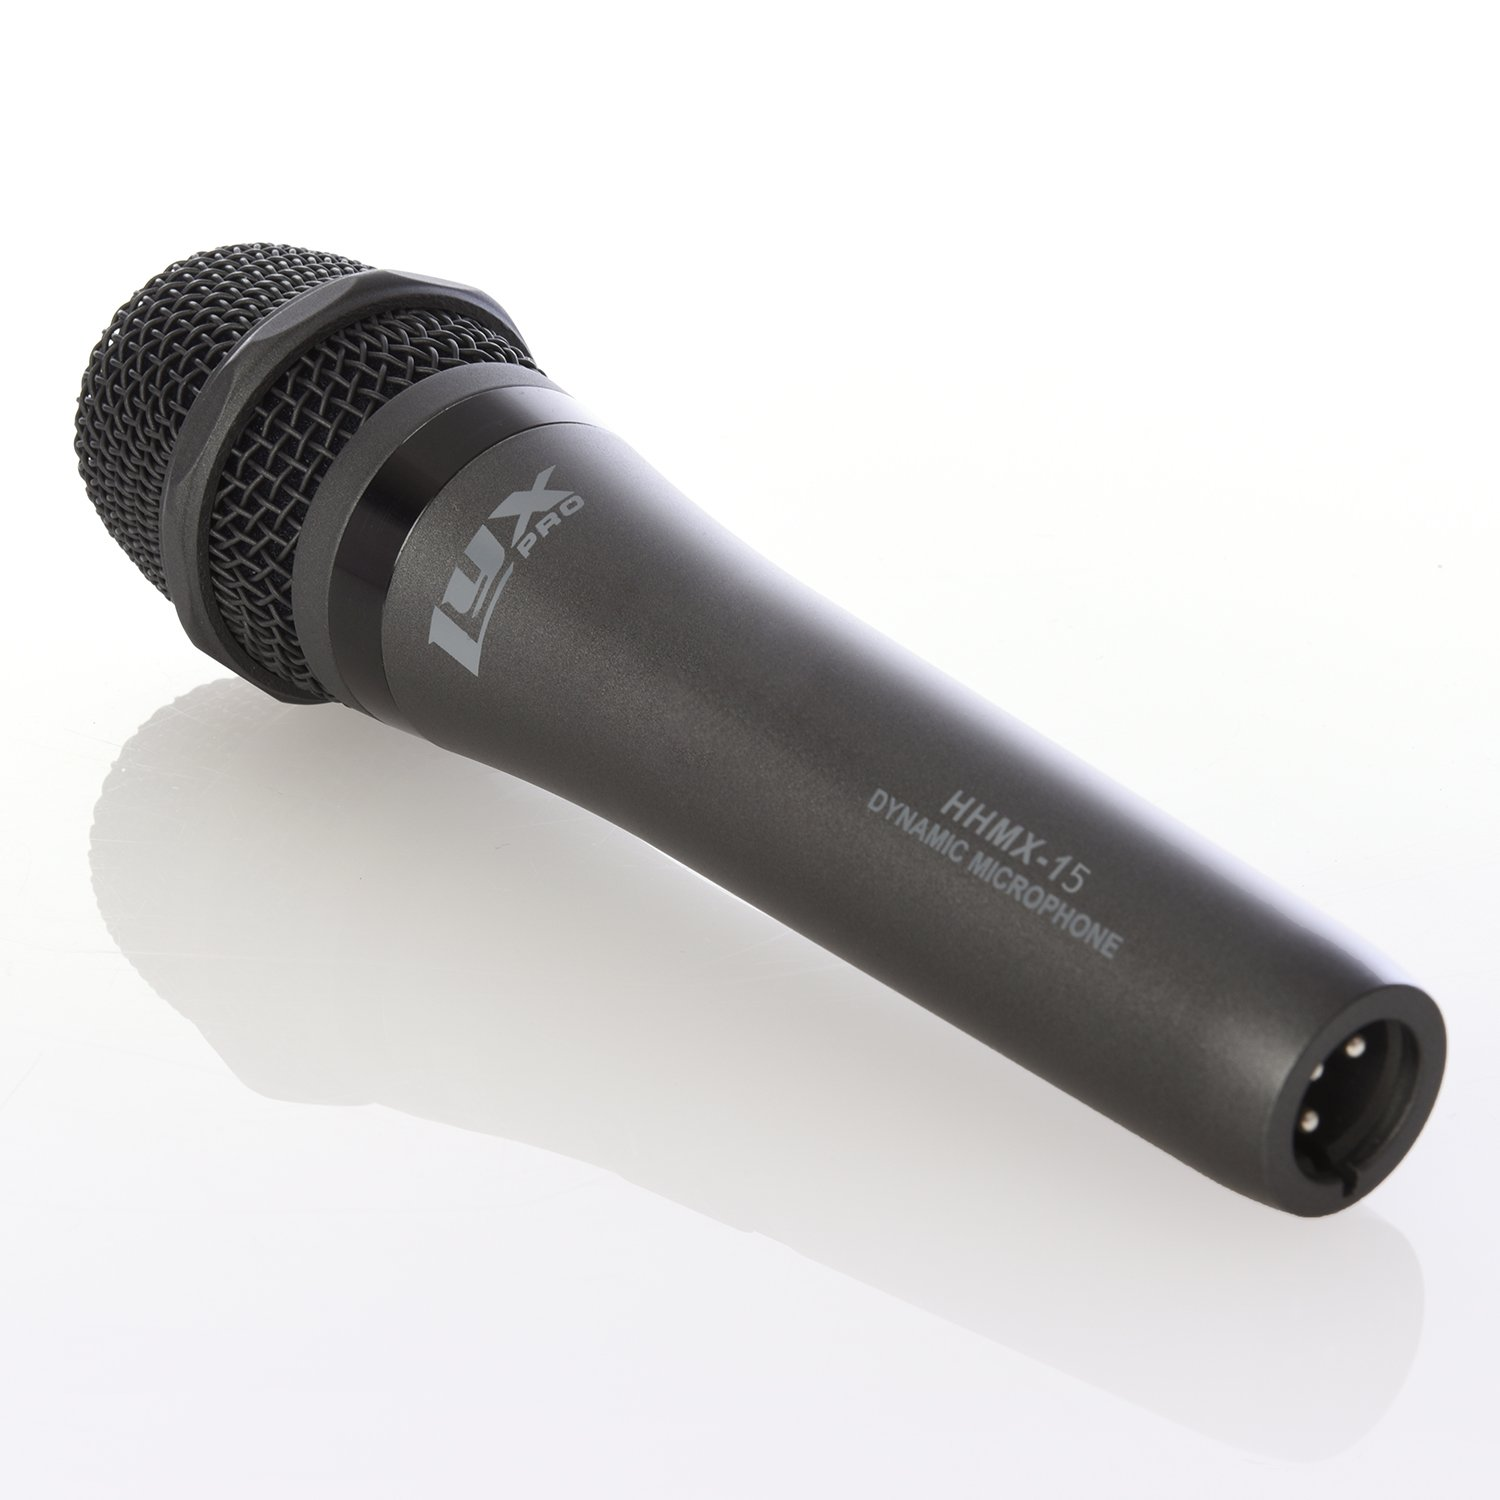 LyxPro HHMX-15 Professional Handheld Vocal Dynamic Cardioid Microphone, Accurate Sound Reproduction for Live Vocals, Recording and Instruments